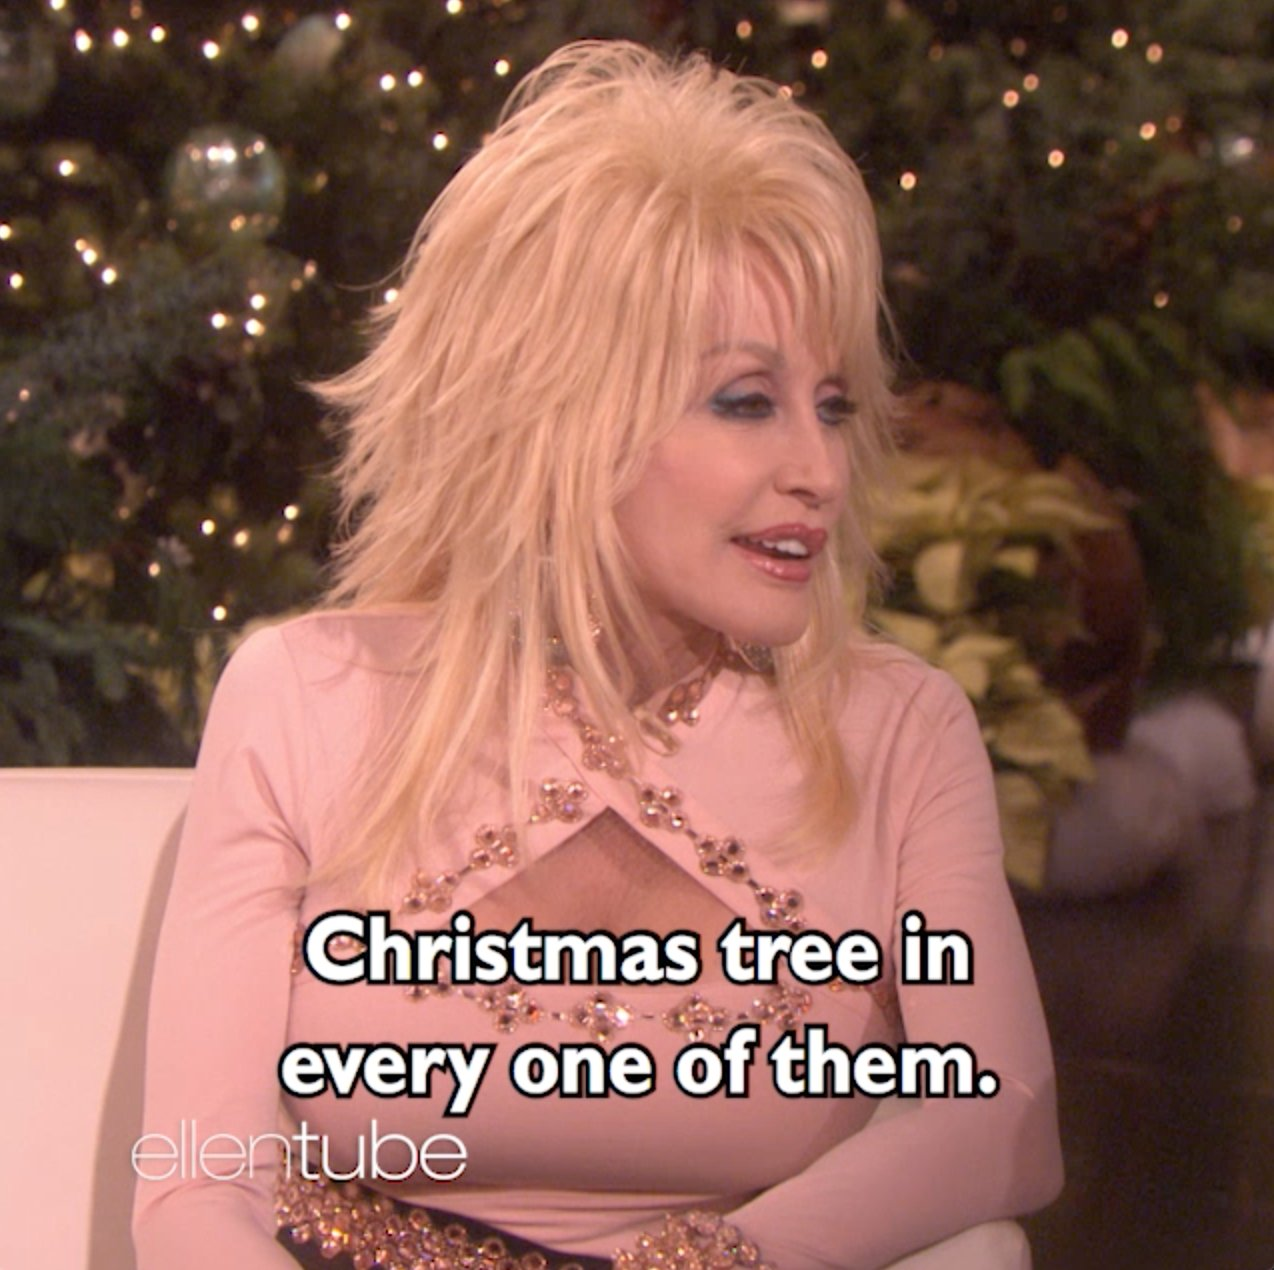 I want to go to @DollyParton's house for Christmas. https://t.co/EZ6fDVxWvG